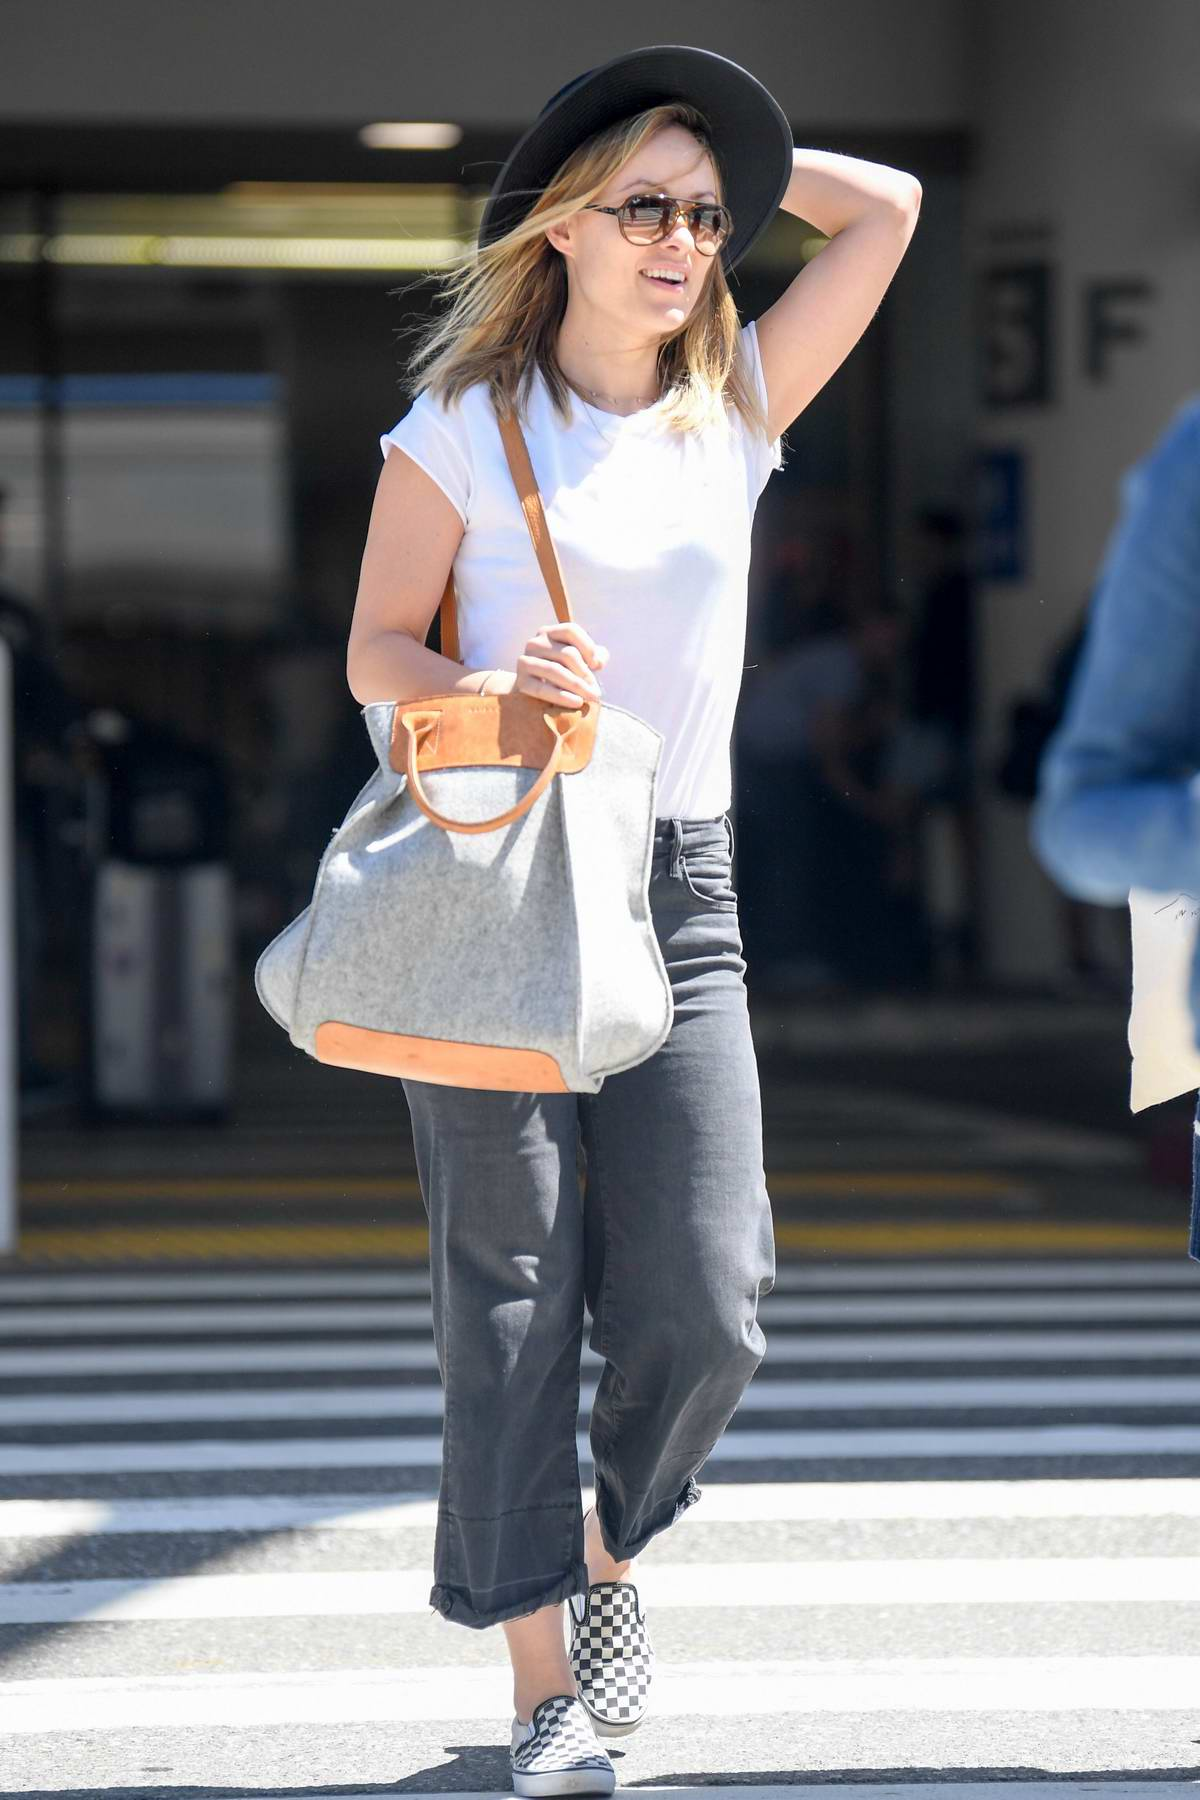 Olivia Wilde is all smiles as she arrives at LAX in Los Angeles